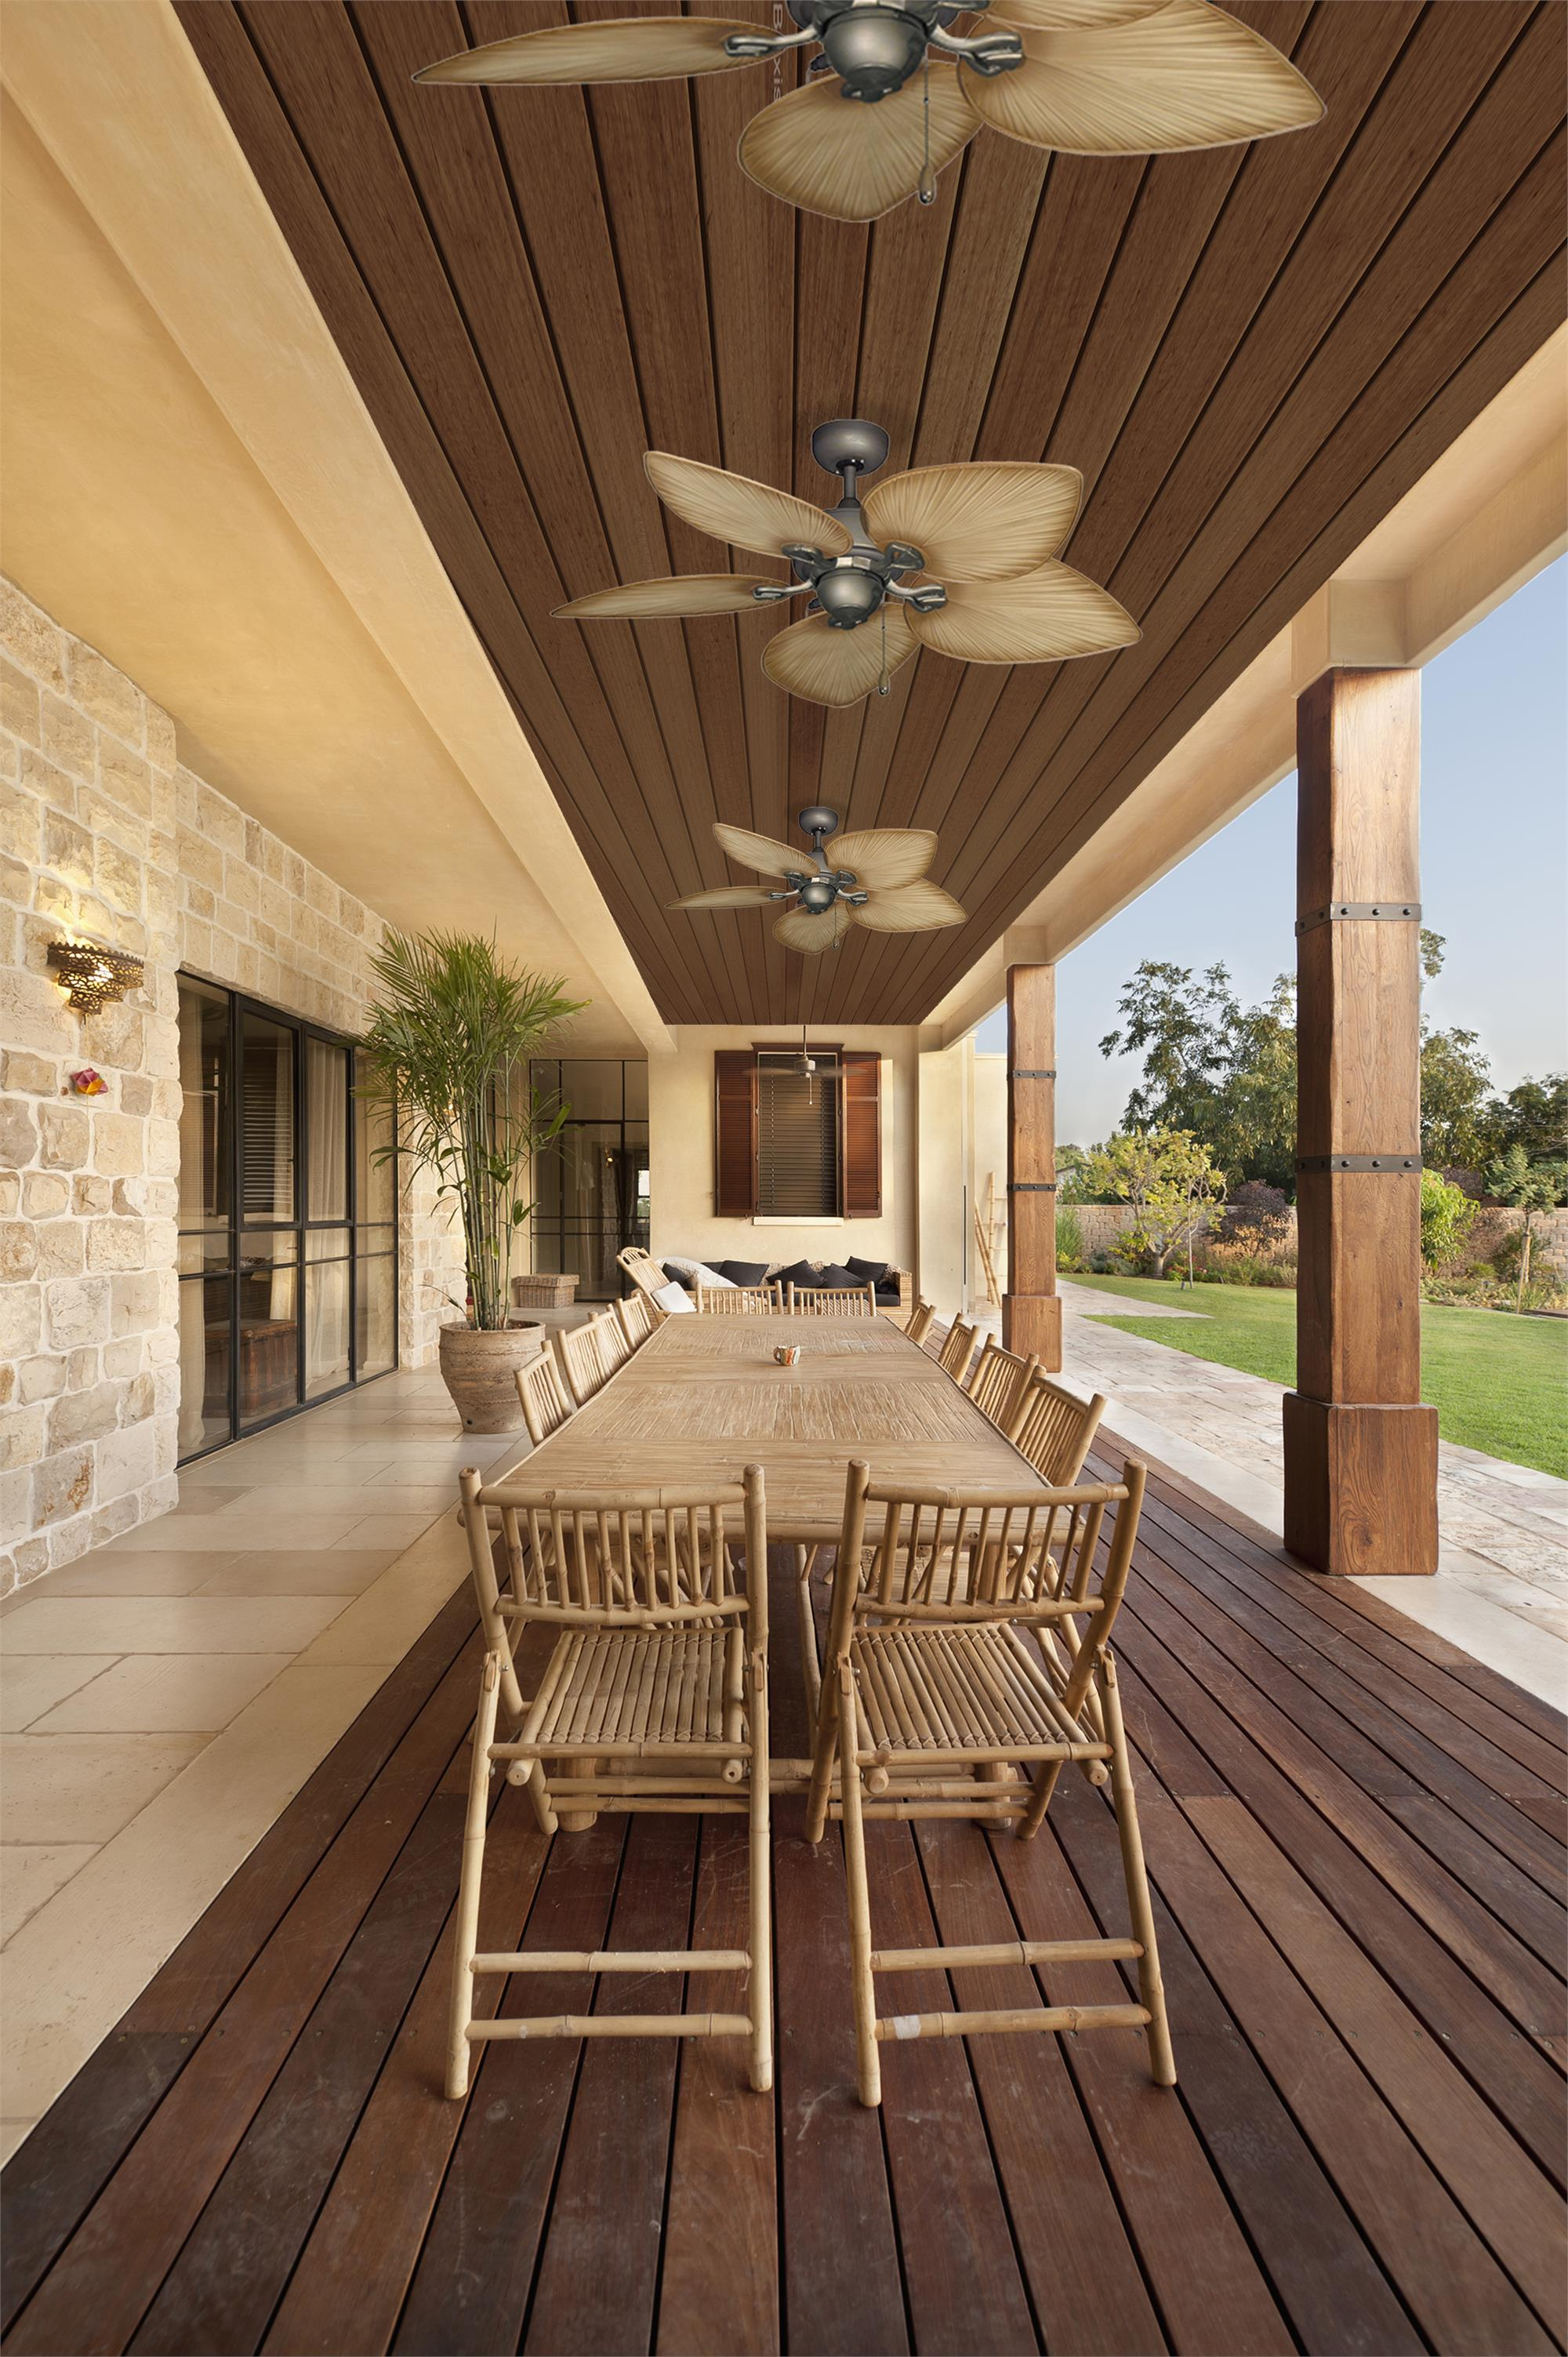 42 Inch Bombay Tropical Ceiling Fan With Tan Blades